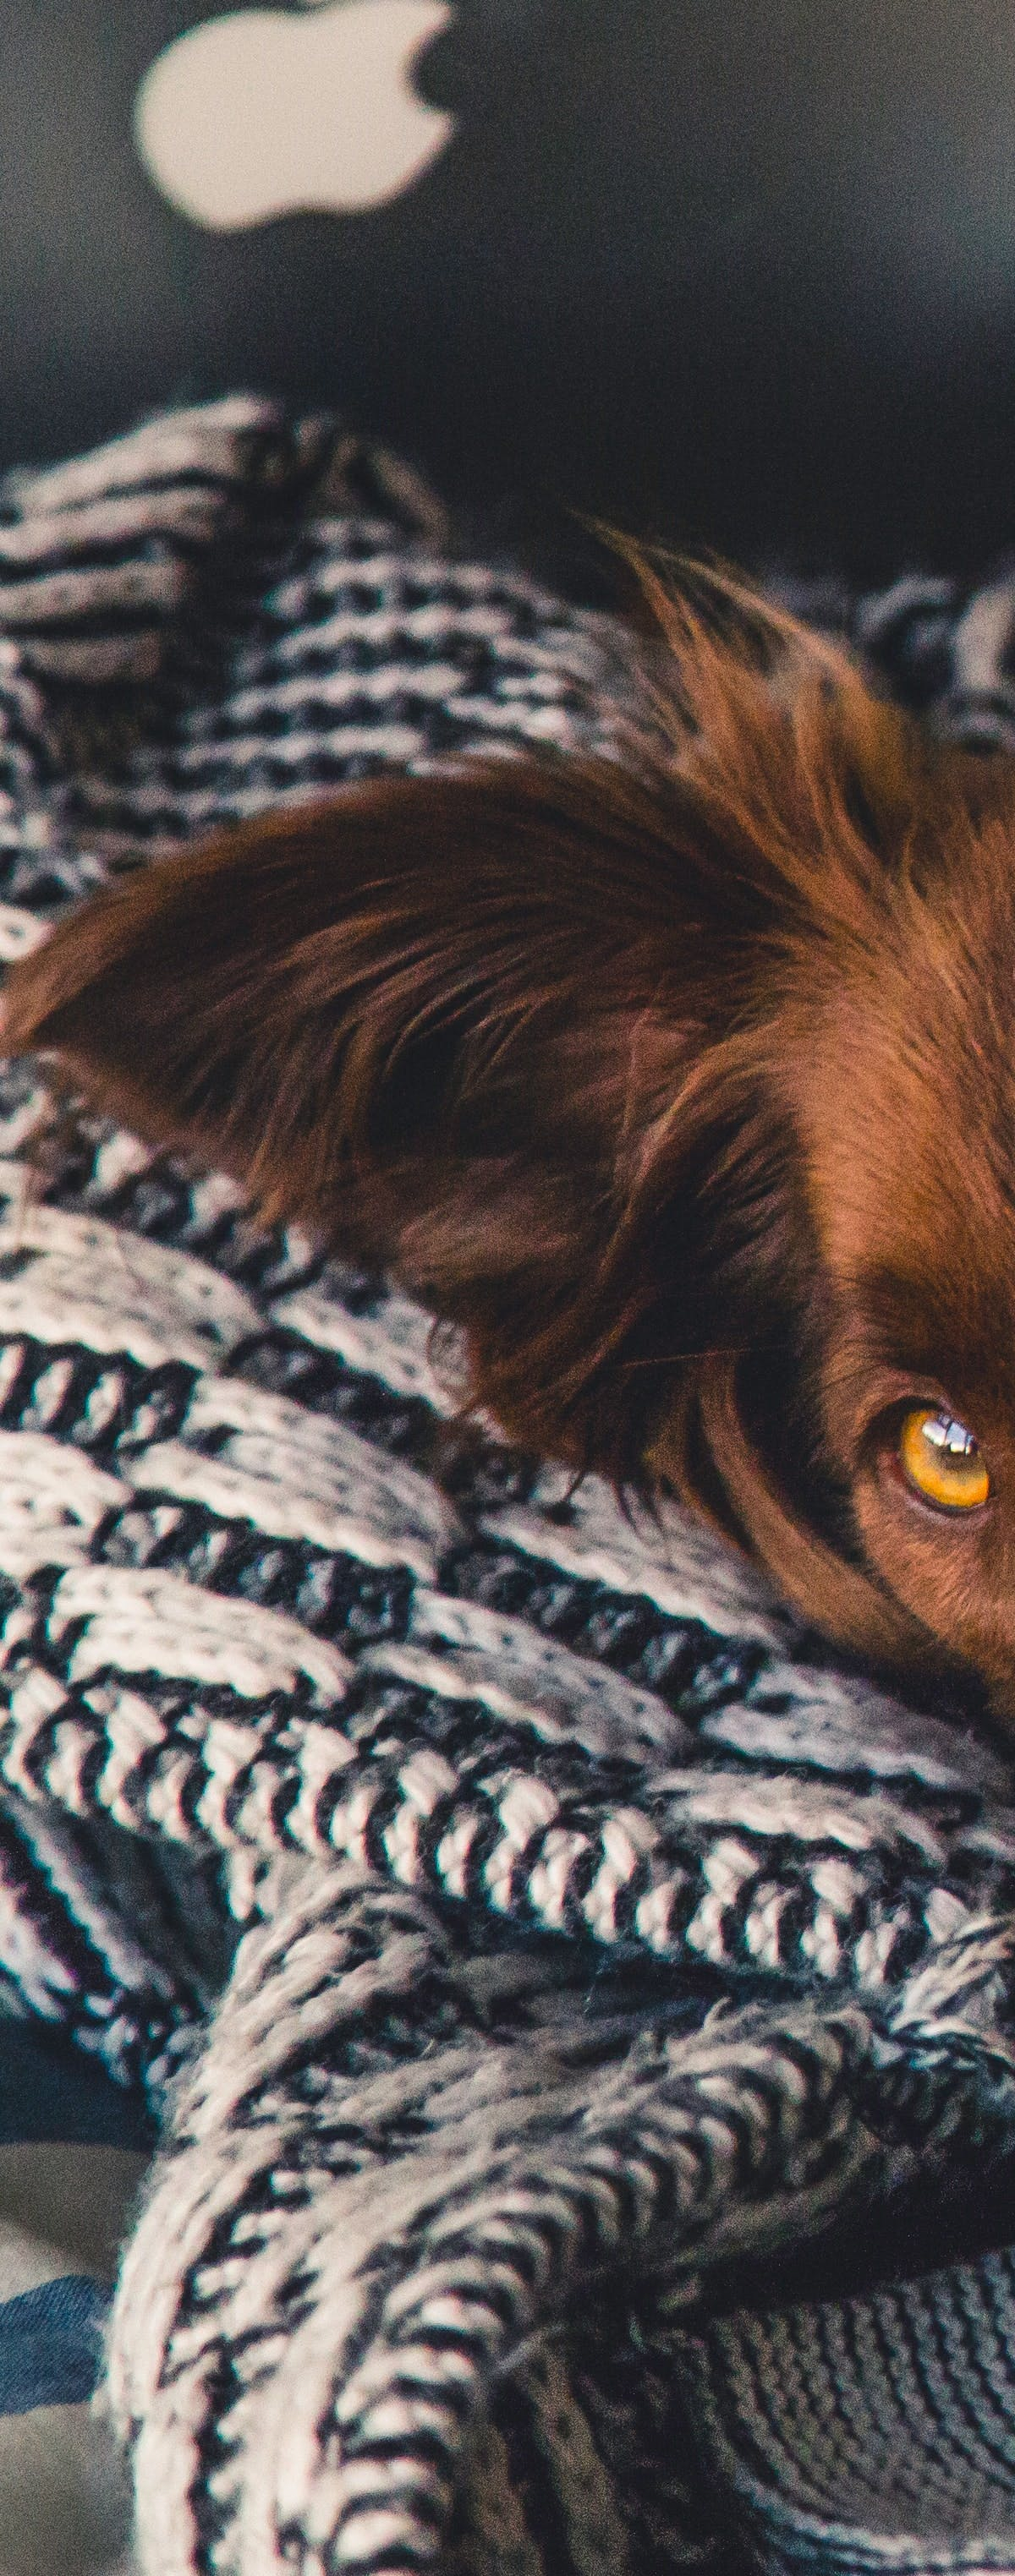 6 Things Every Pet Owner Should Have